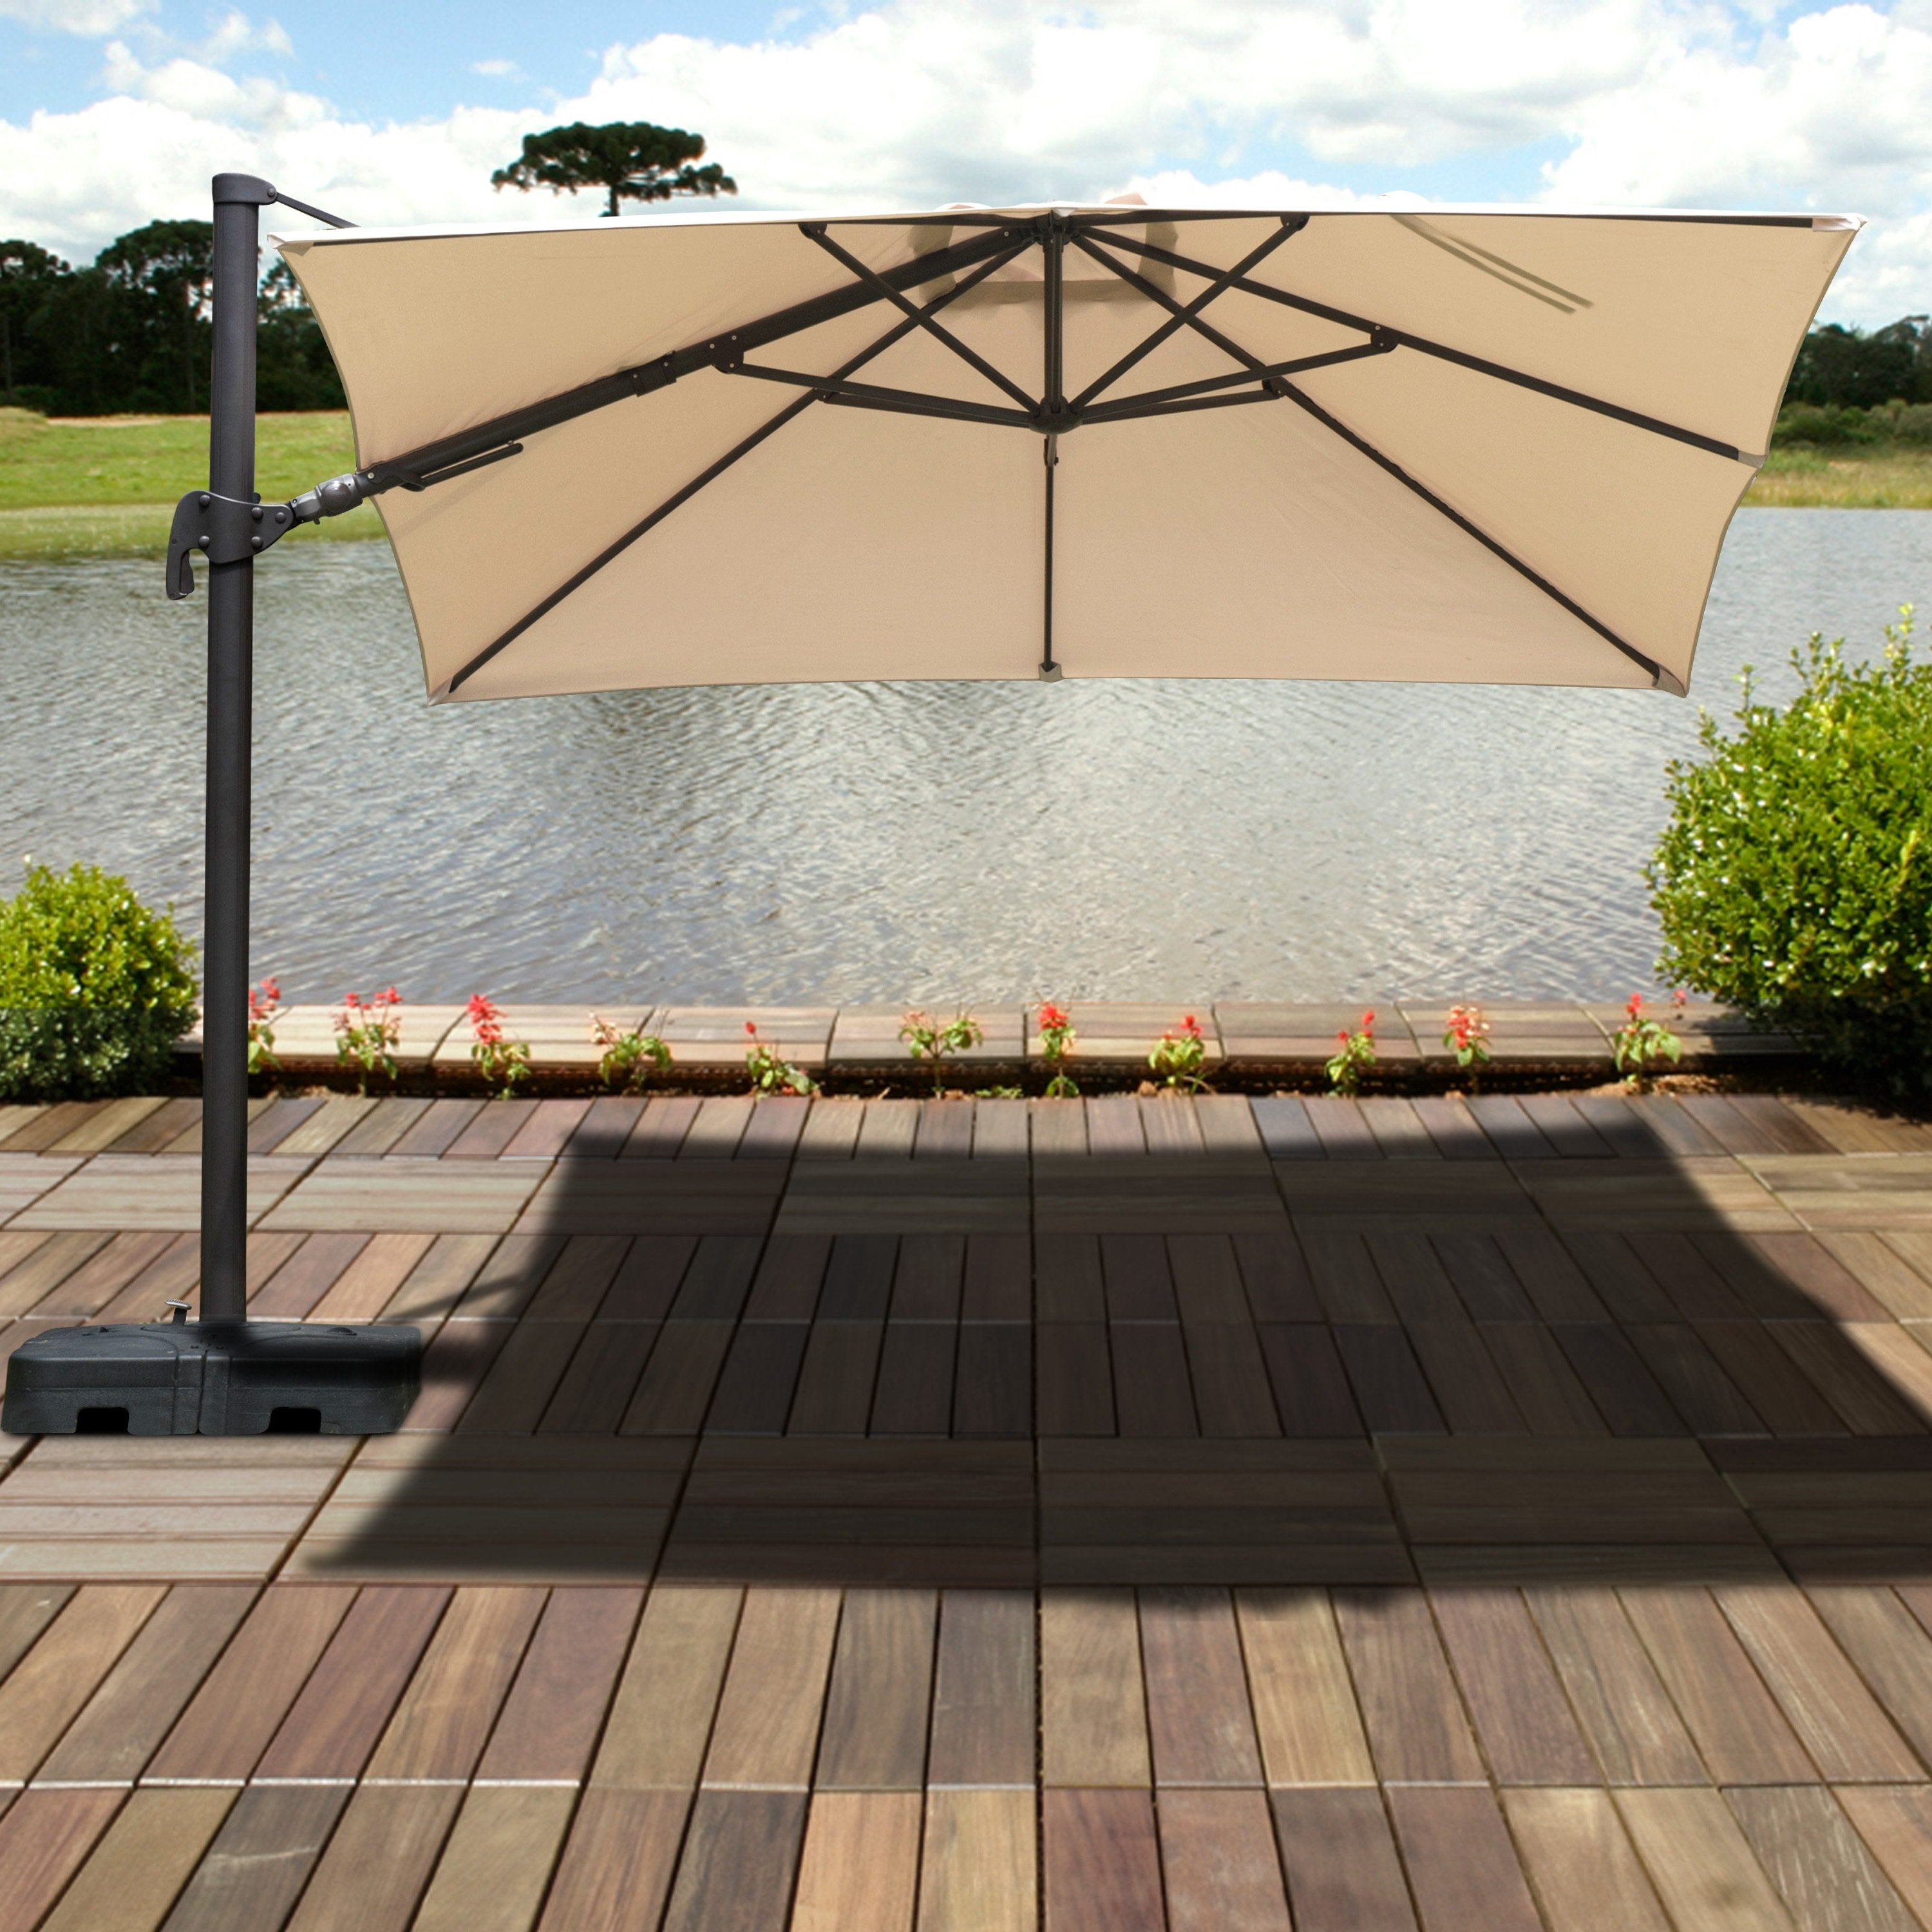 Gemmenne 10' Square Cantilever Umbrella With Regard To Well Liked Tallulah Sunshade Hanging Outdoor Cantilever Umbrellas (View 18 of 20)